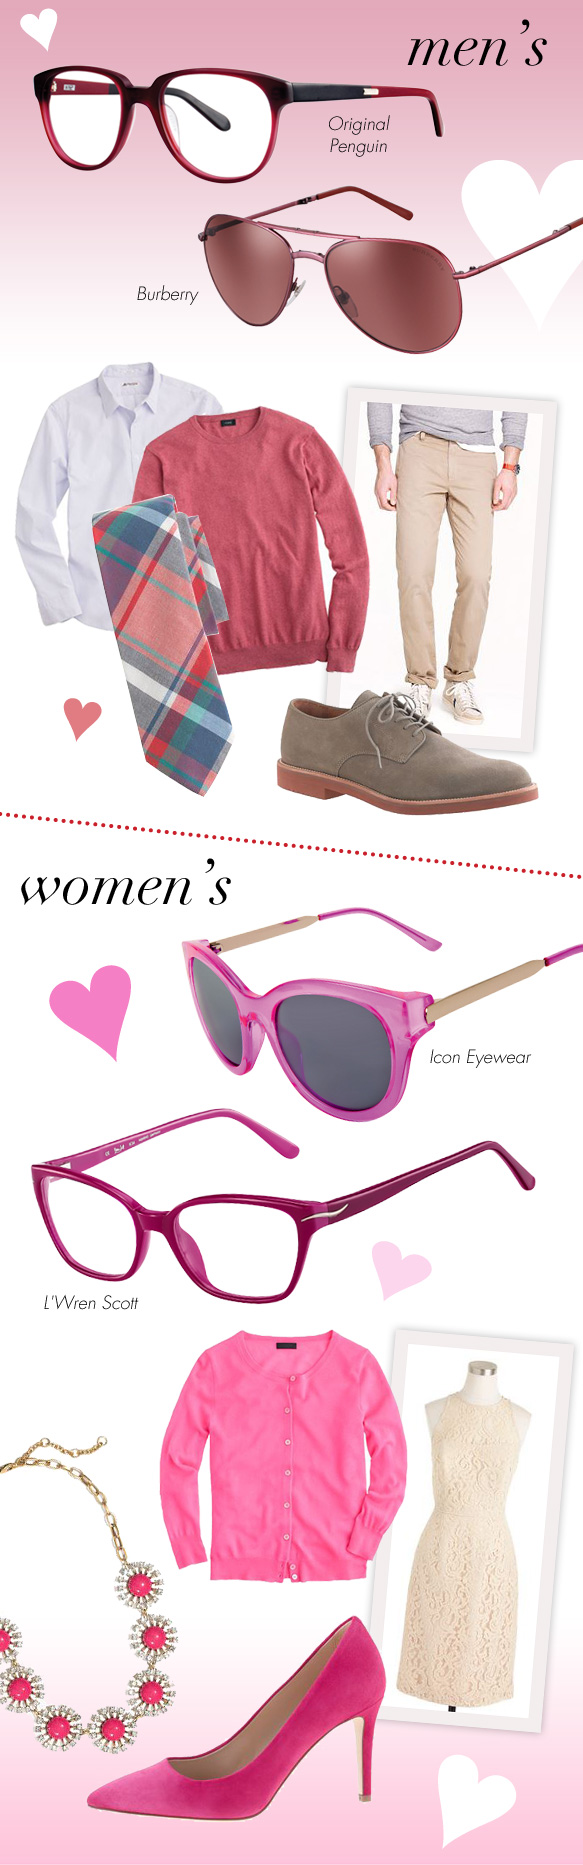 Original Penguin (The Collison), Burberry (BE 0371), Icon Eyewear (11377), L'Wren Scott (331005)